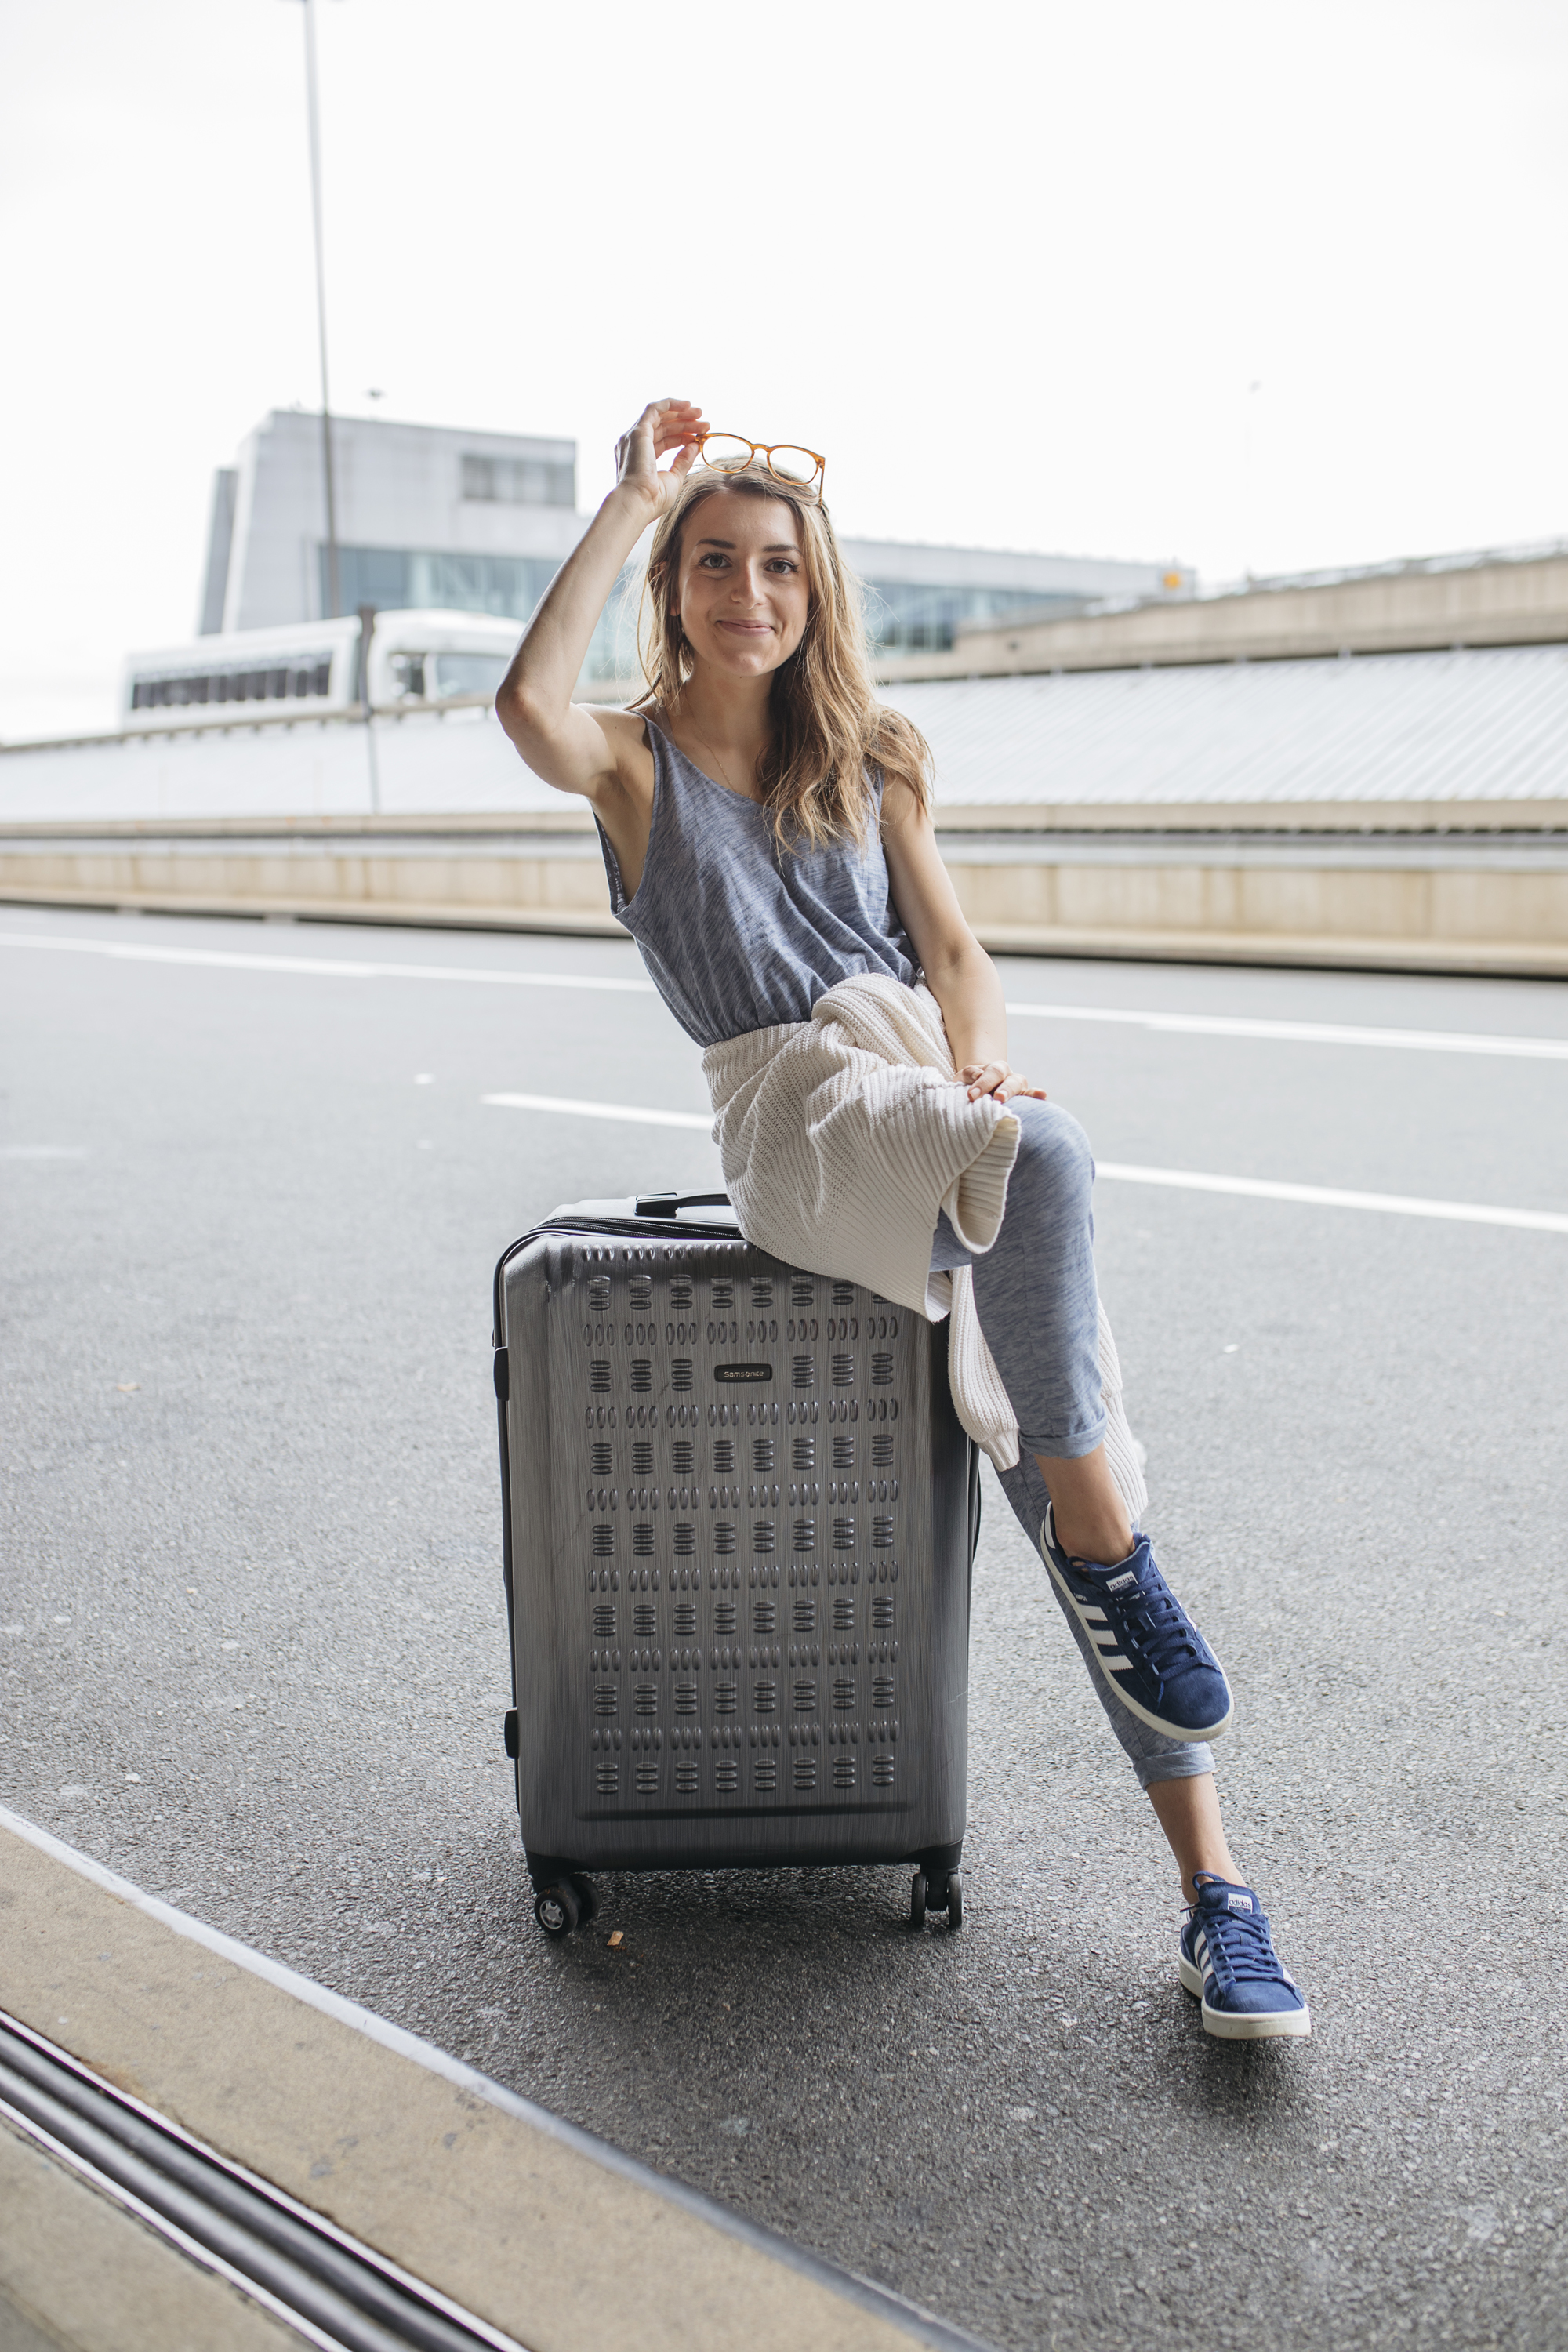 Traveler and blogger poses with suitcase en route to the airport.